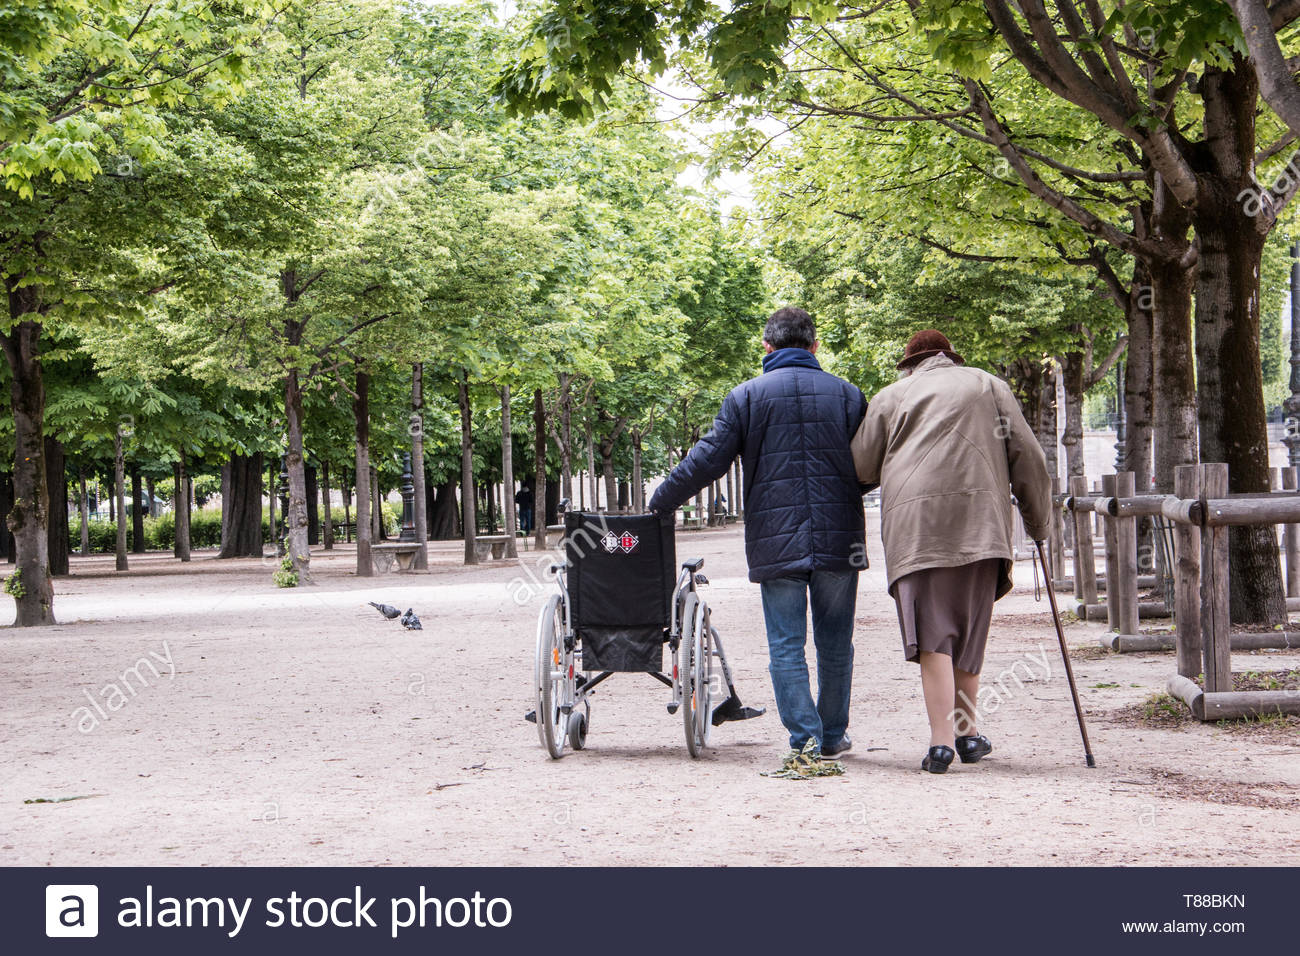 Paris (France), May 6, 2019. Elderly accompanied person taking a walk in the Tuileries gardens, near Louvre in Paris. - Stock Image